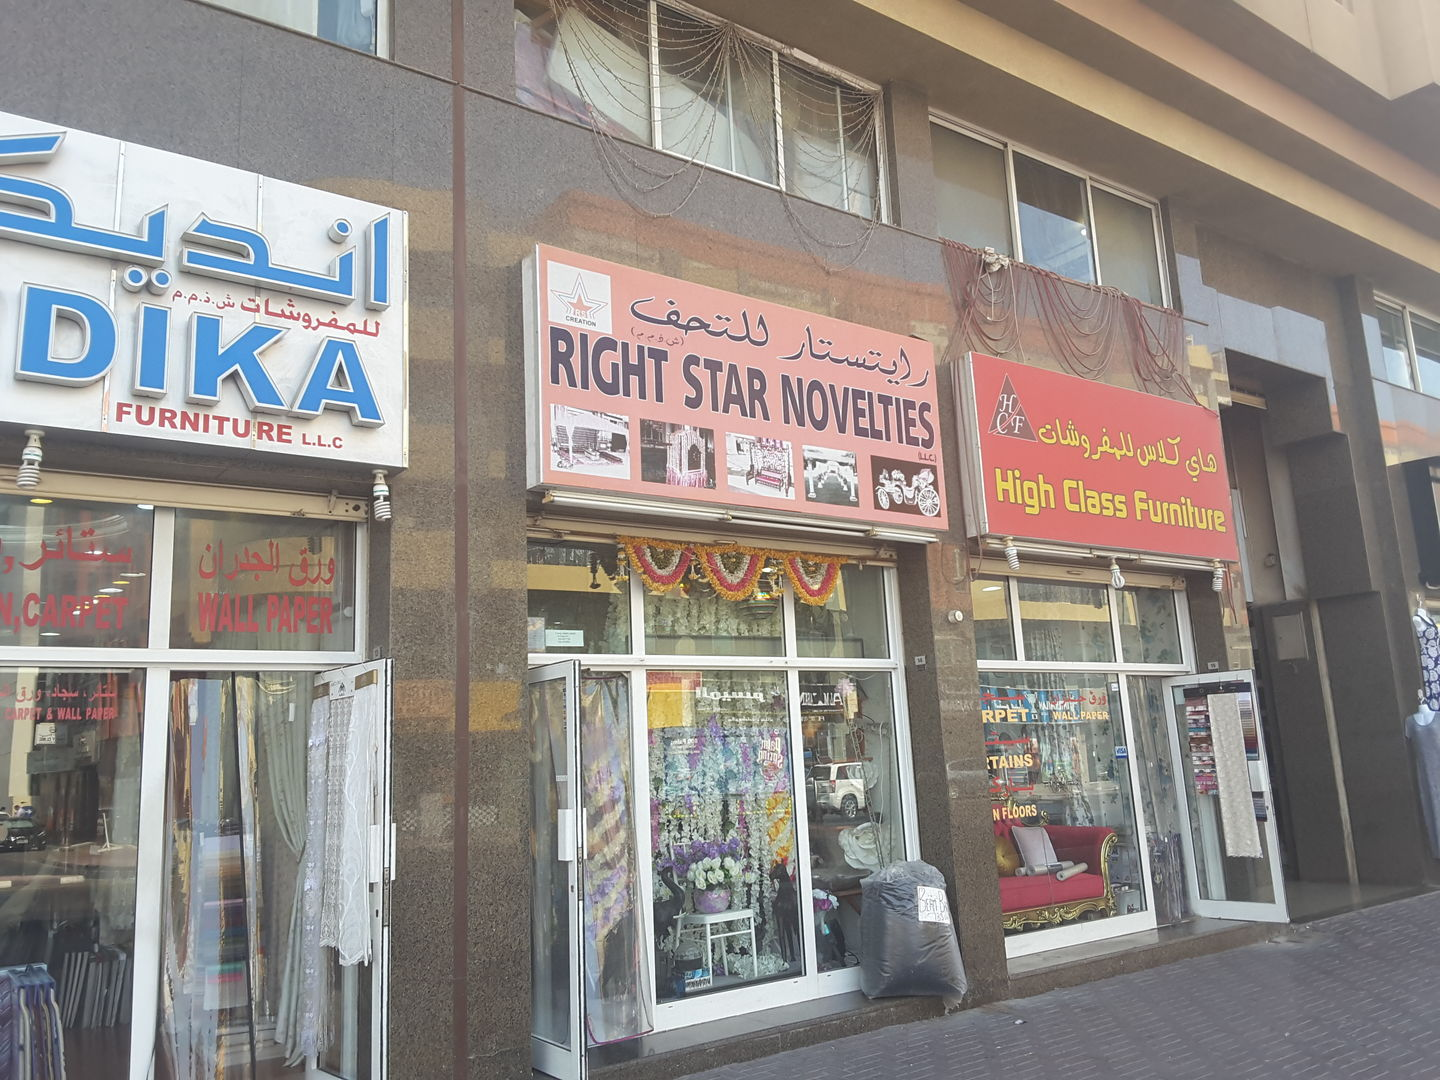 HiDubai-business-right-star-novelties-shopping-furniture-decor-al-satwa-dubai-2